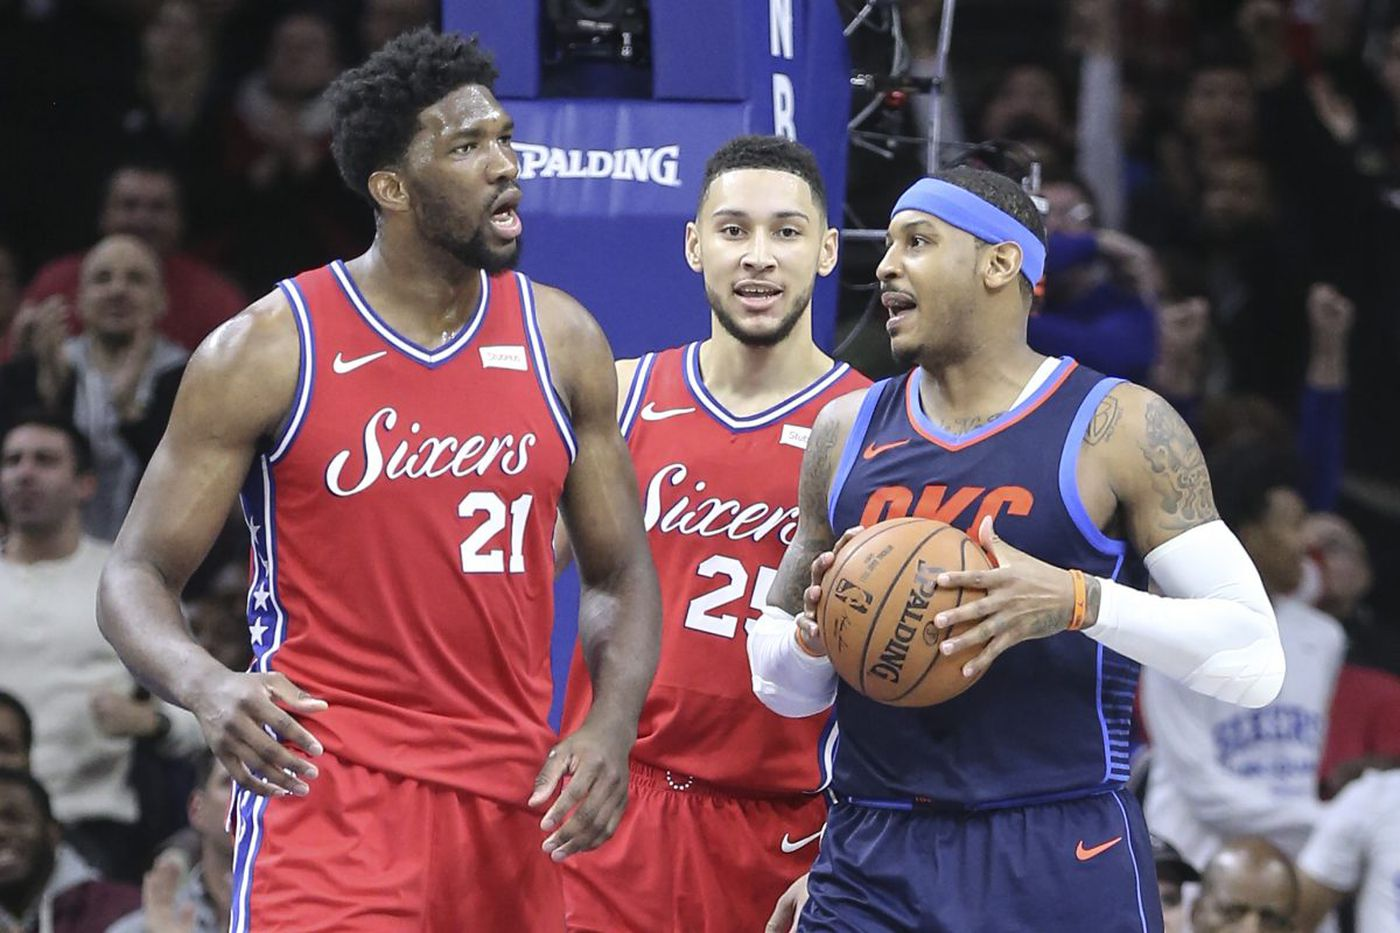 No more excuses: Sixers need to start showing more than potential on the biggest stages